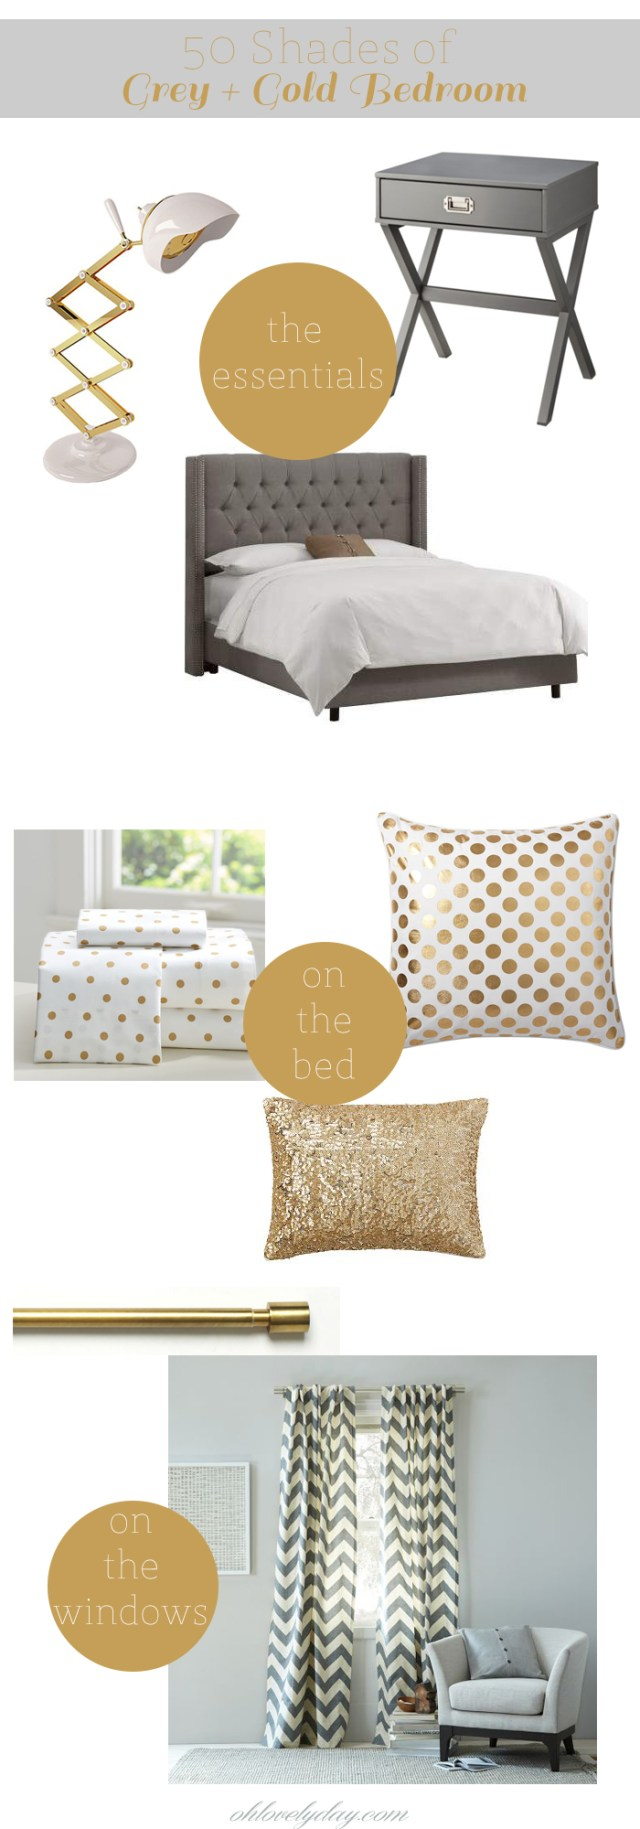 Grey + Gold Bedroom Inspiration